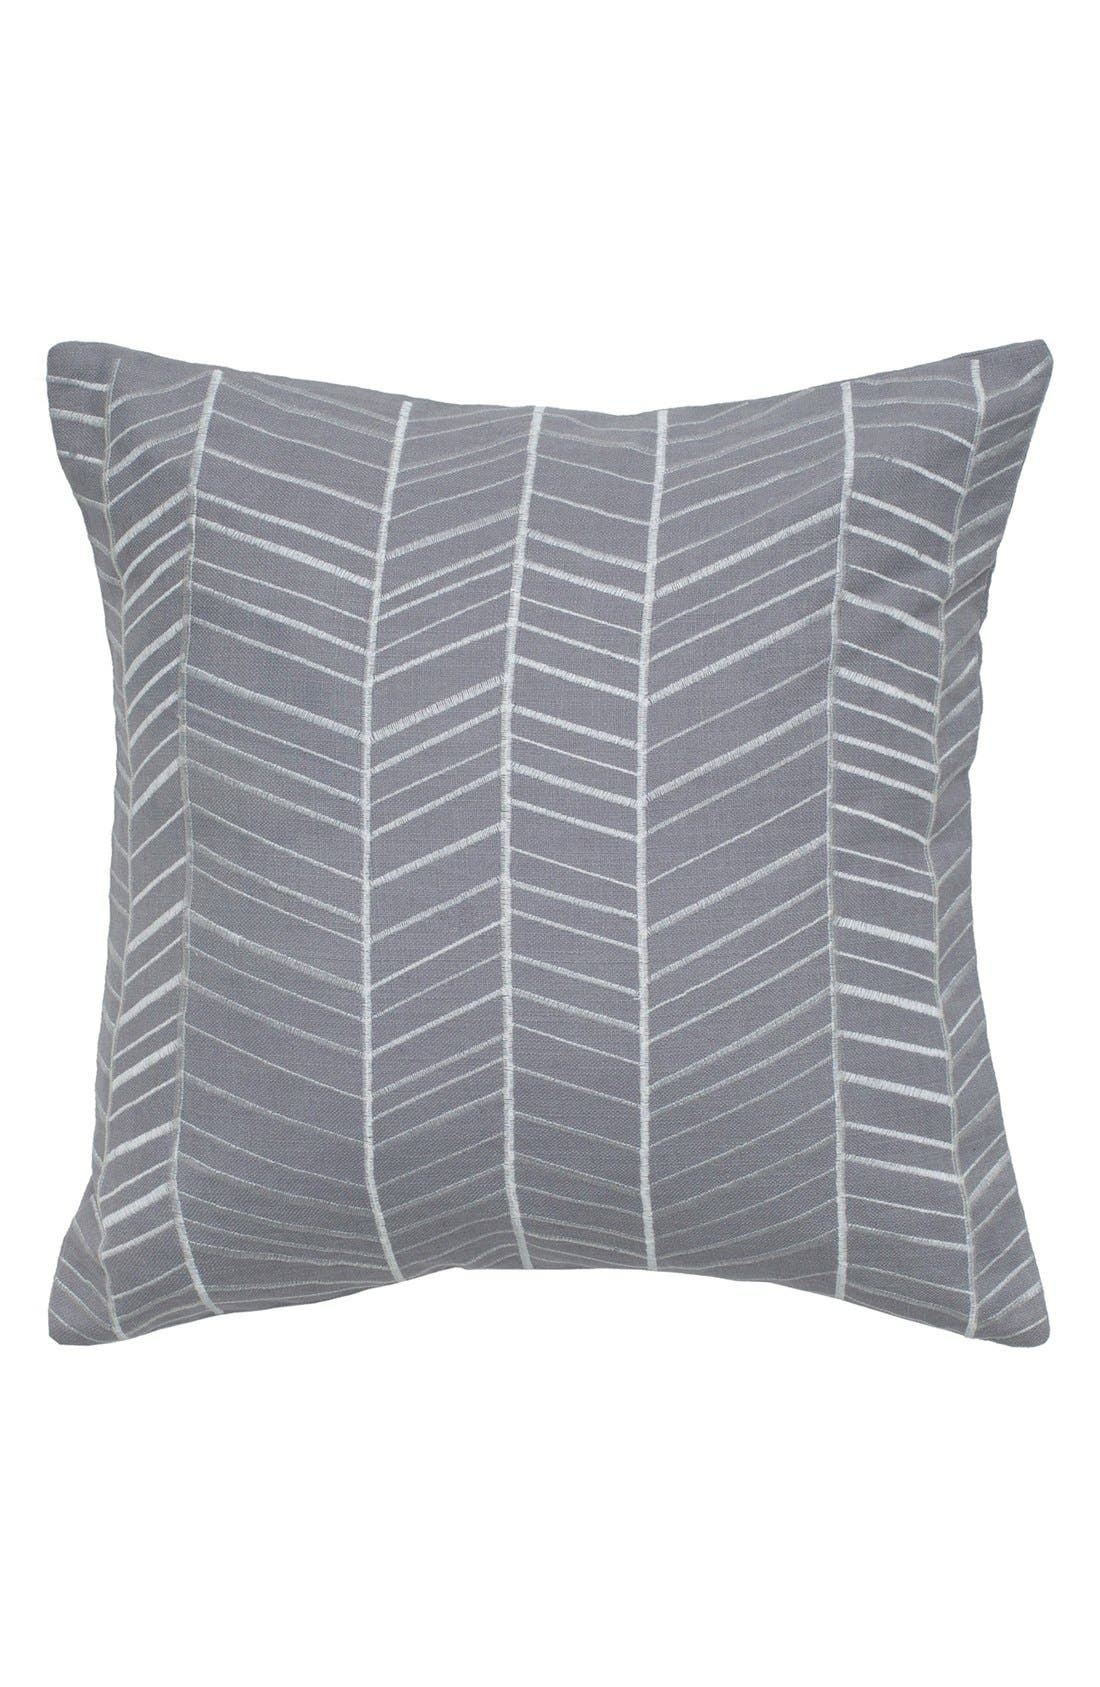 Chevron Pillow,                             Main thumbnail 1, color,                             050